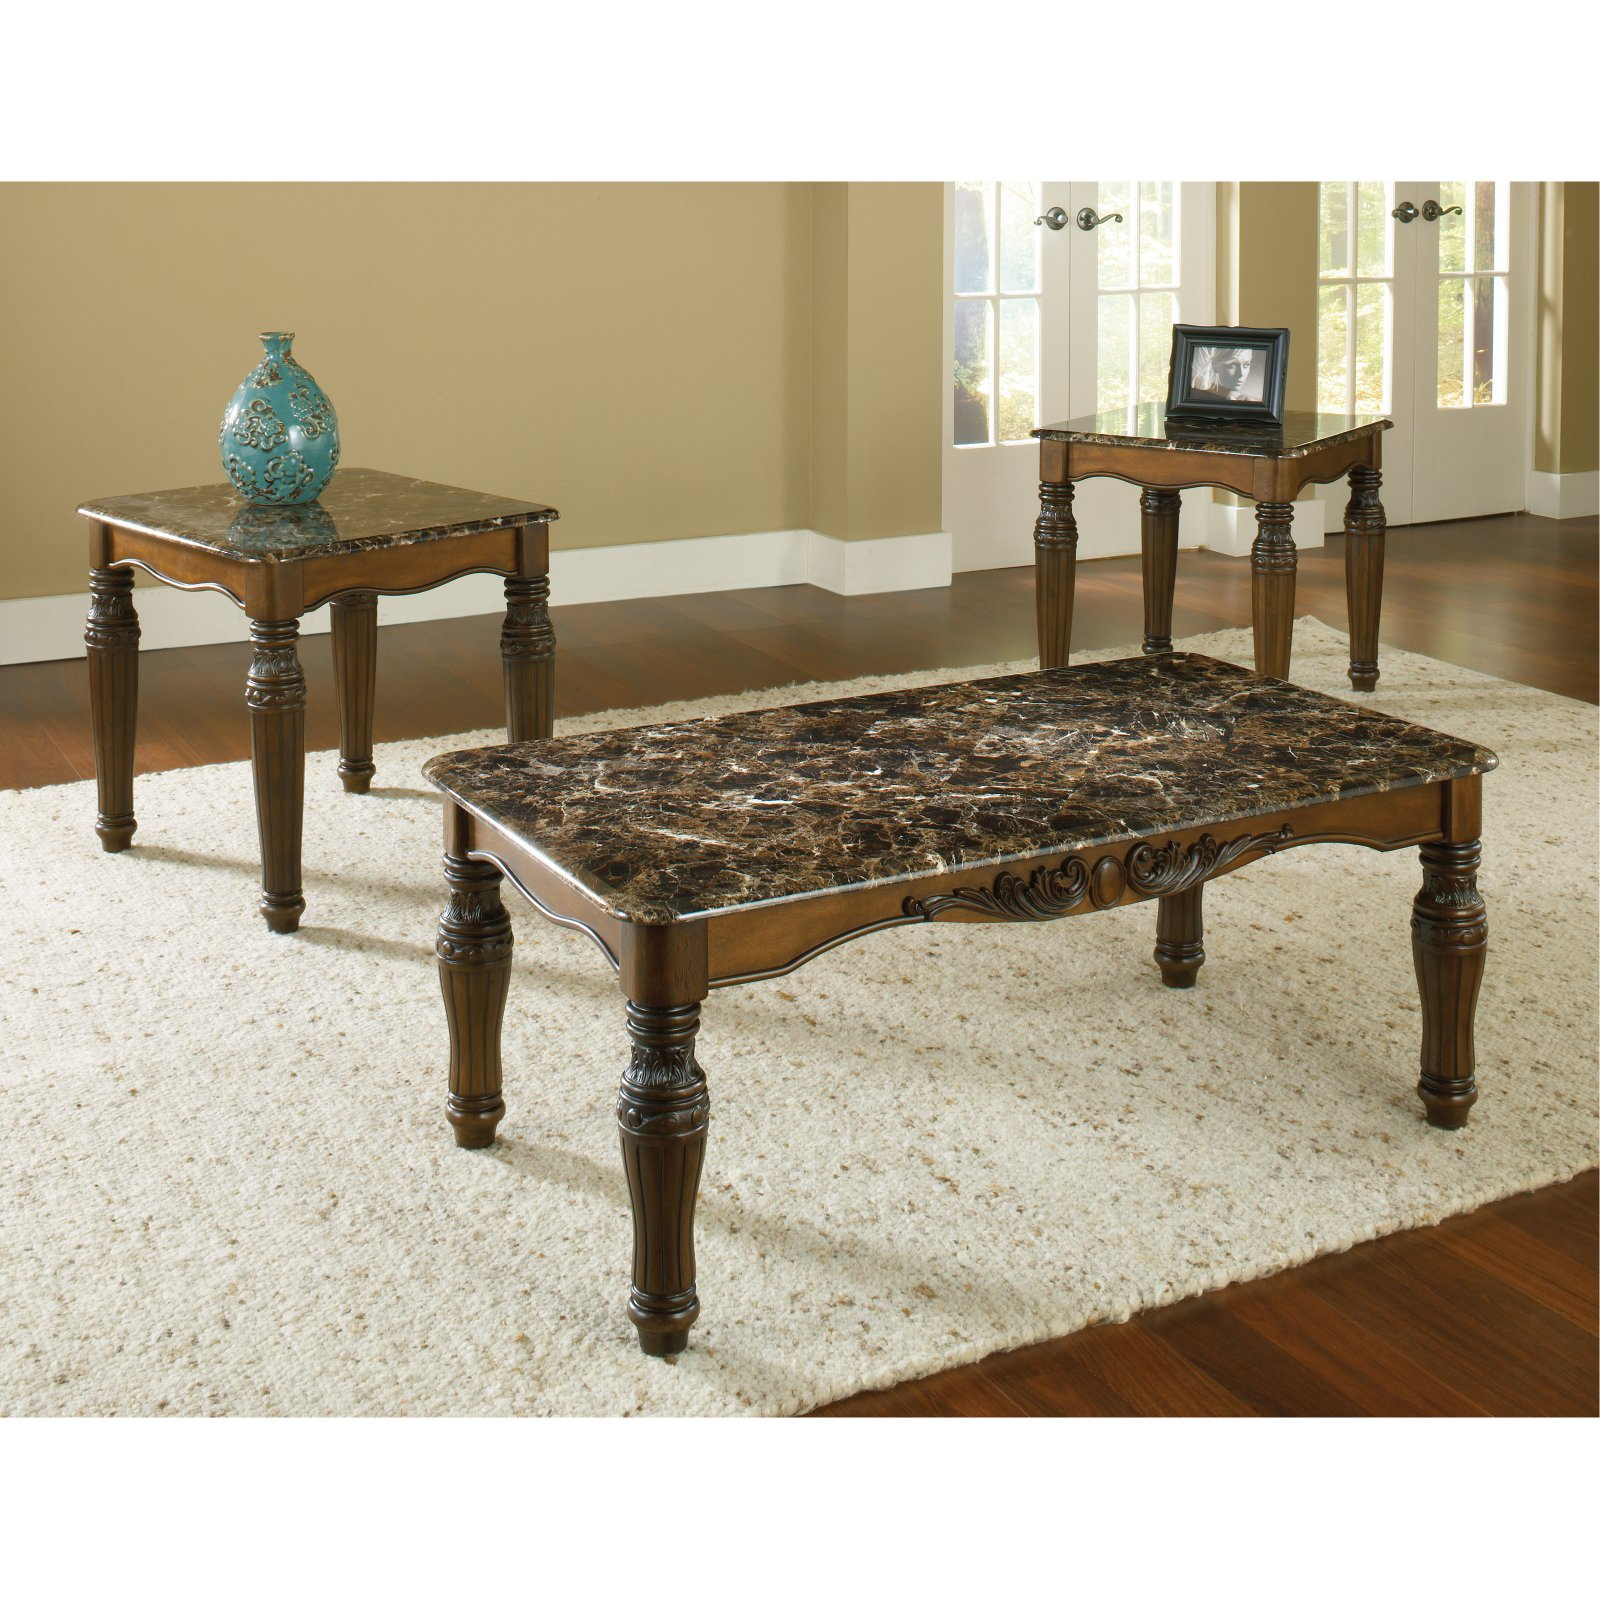 Bernards Dark Brown with Faux Marble Top - Set of 3